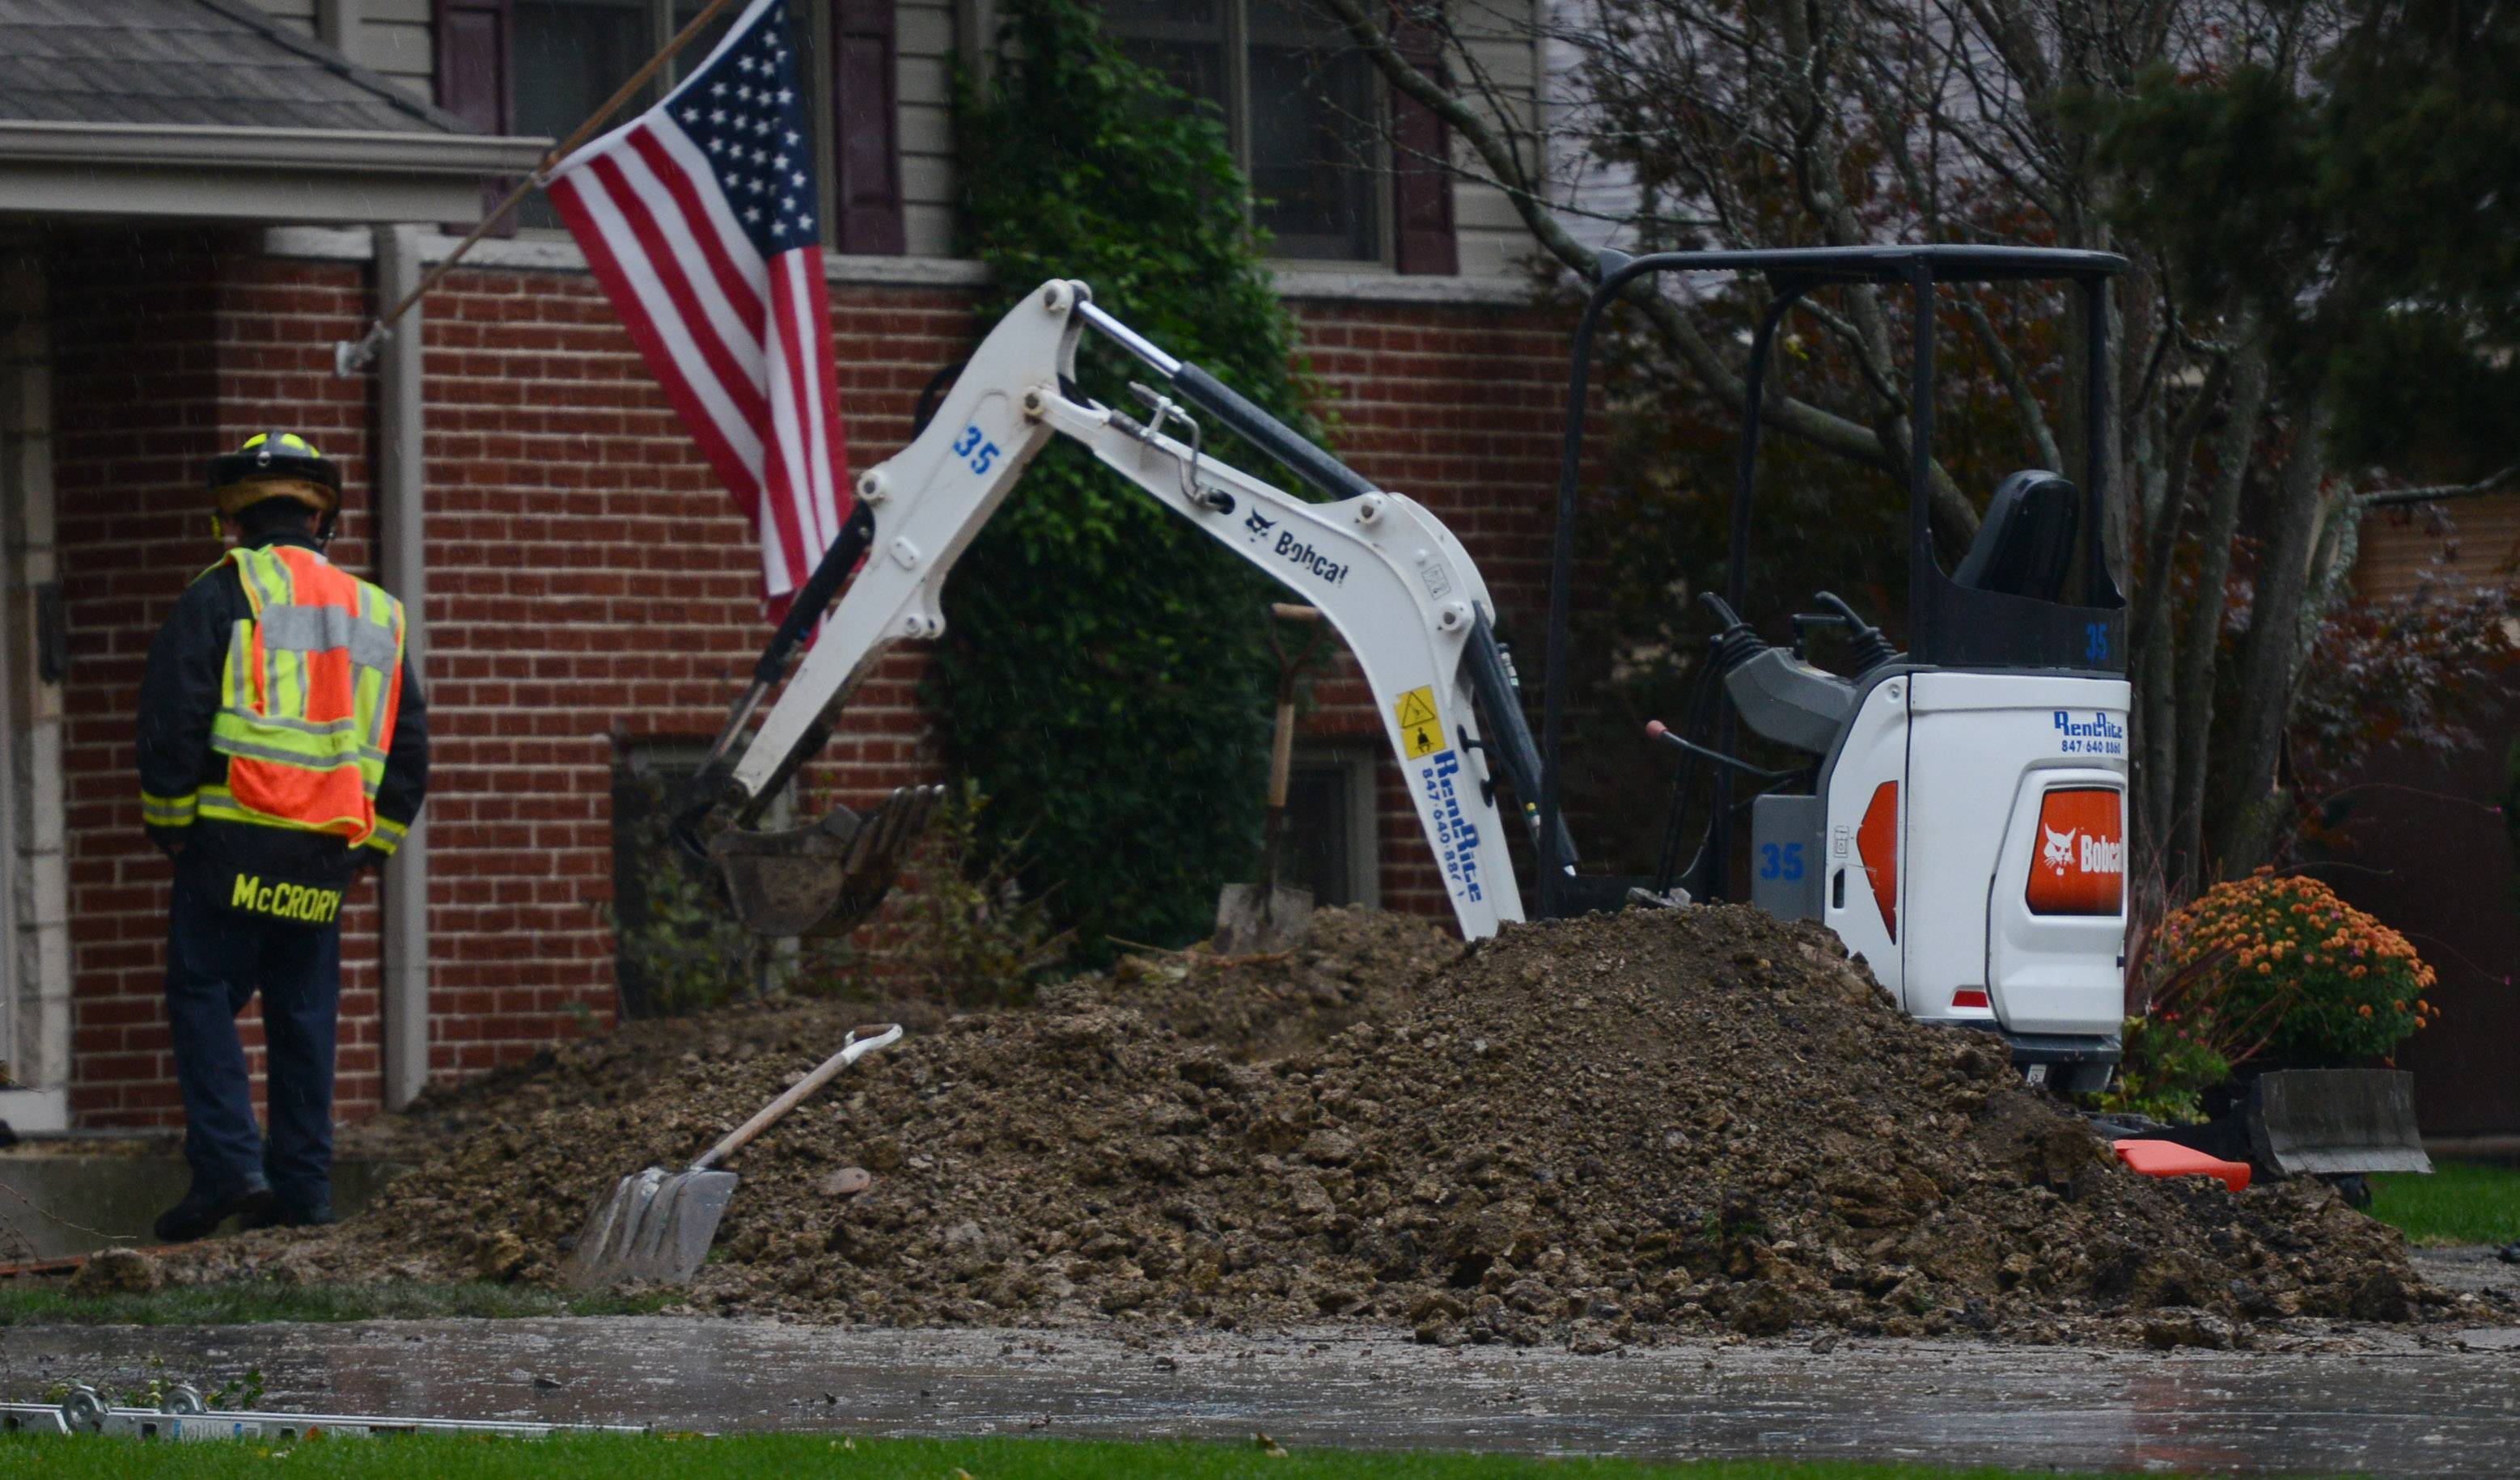 Worker rescued from trench in Mount Prospect